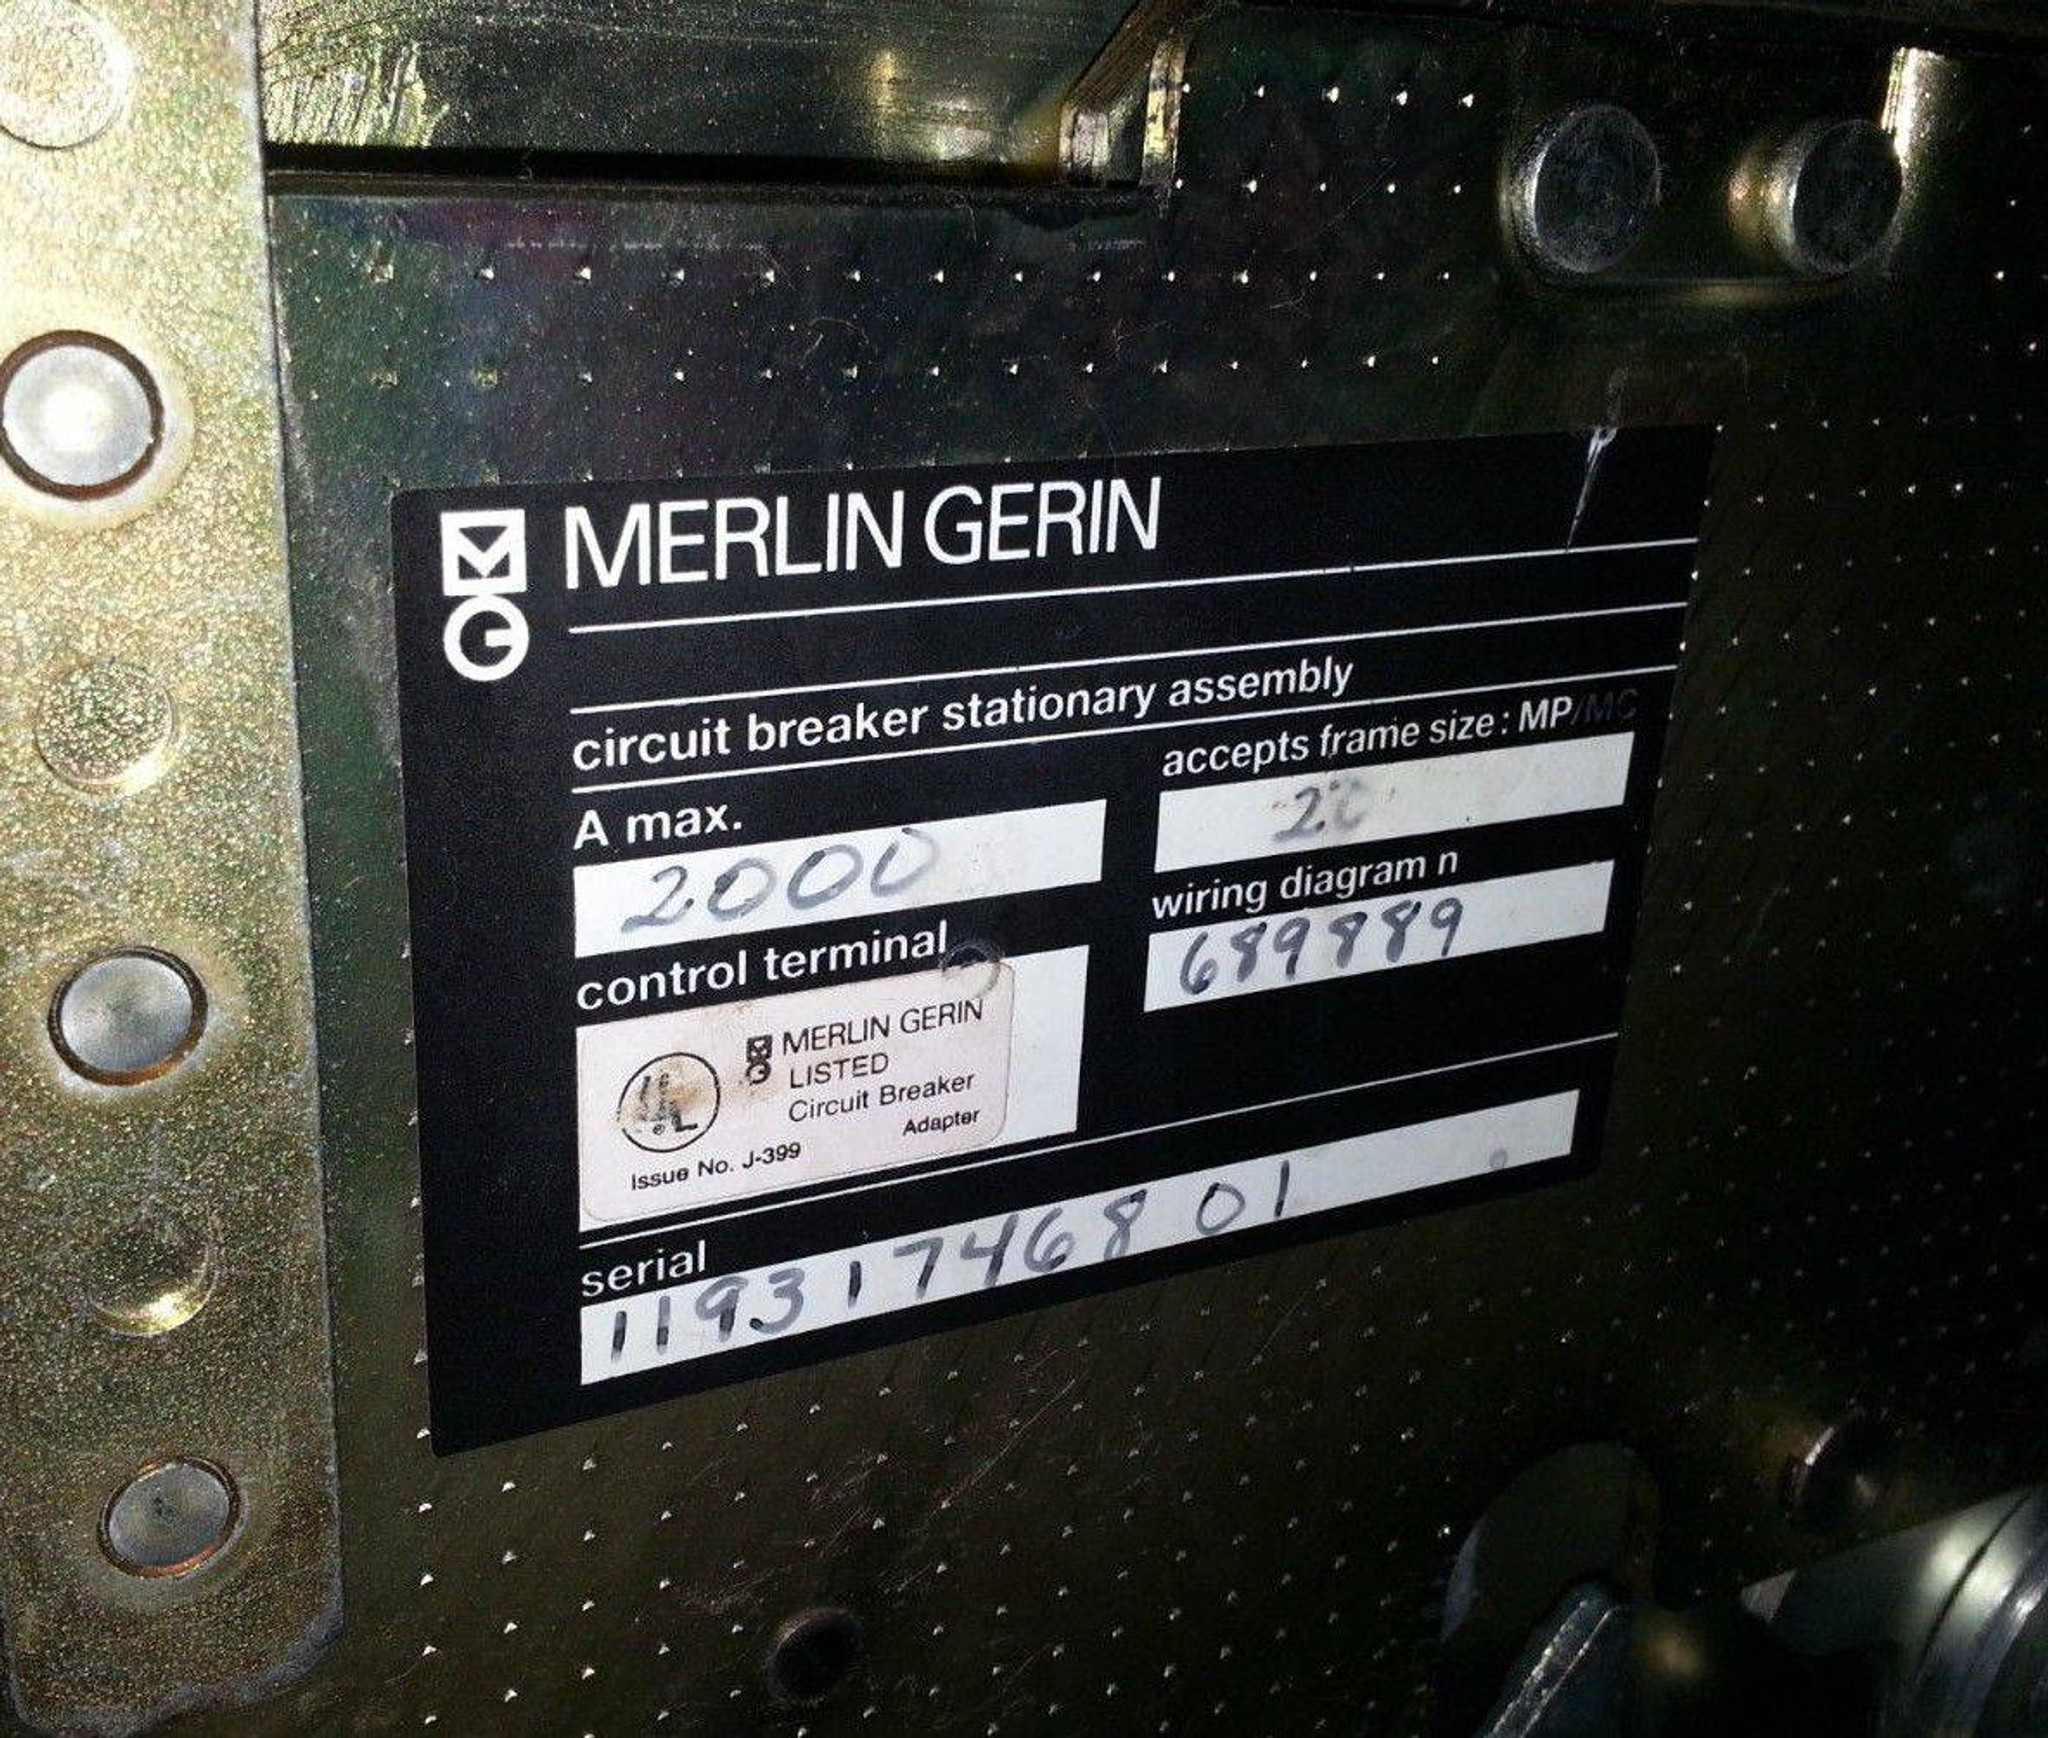 Square D MP20H2 Merlin Gerin Masterpact Draw-out Frame embly ... on square d multi 9, square d 100 amp panel template, square d sef, square d la, square d altivar, square d powerpact, square d powerlogic, square d electrical panel schedule template,